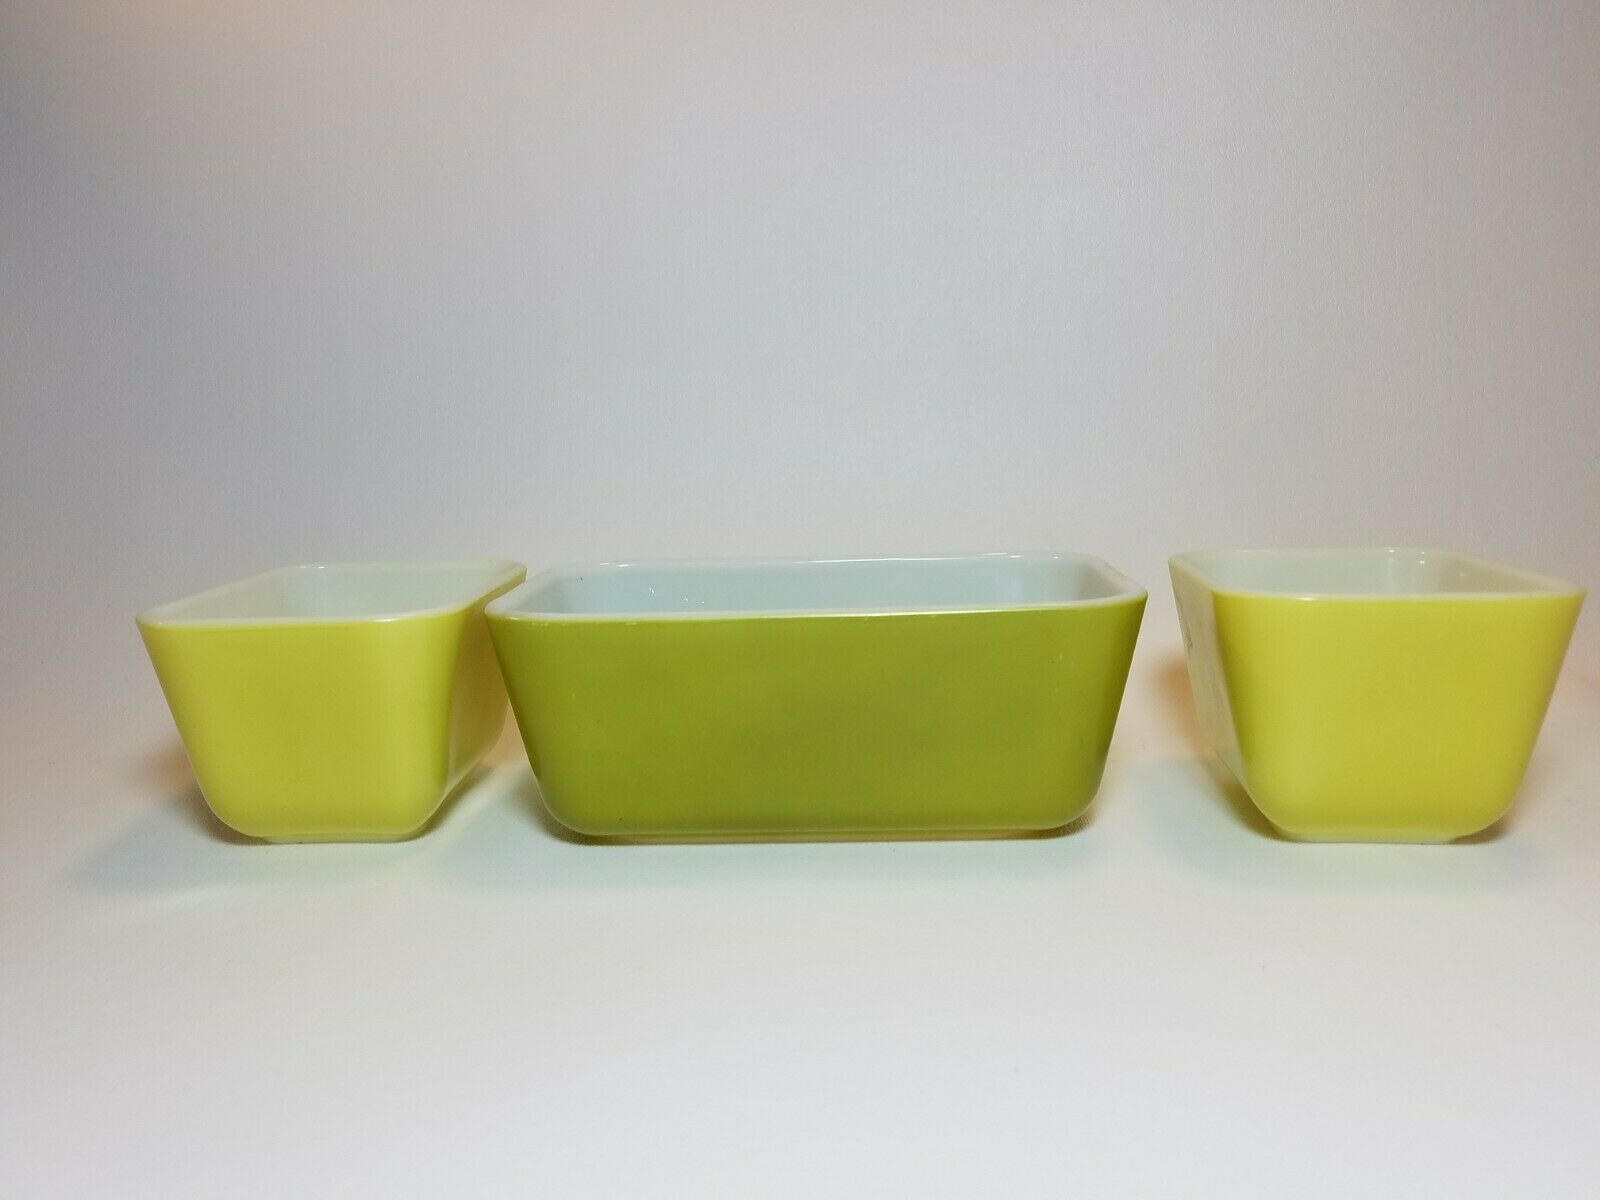 Vintage Pyrex Verde Green and Yellow 501 & 502 Refrigerator Dishes No Lids